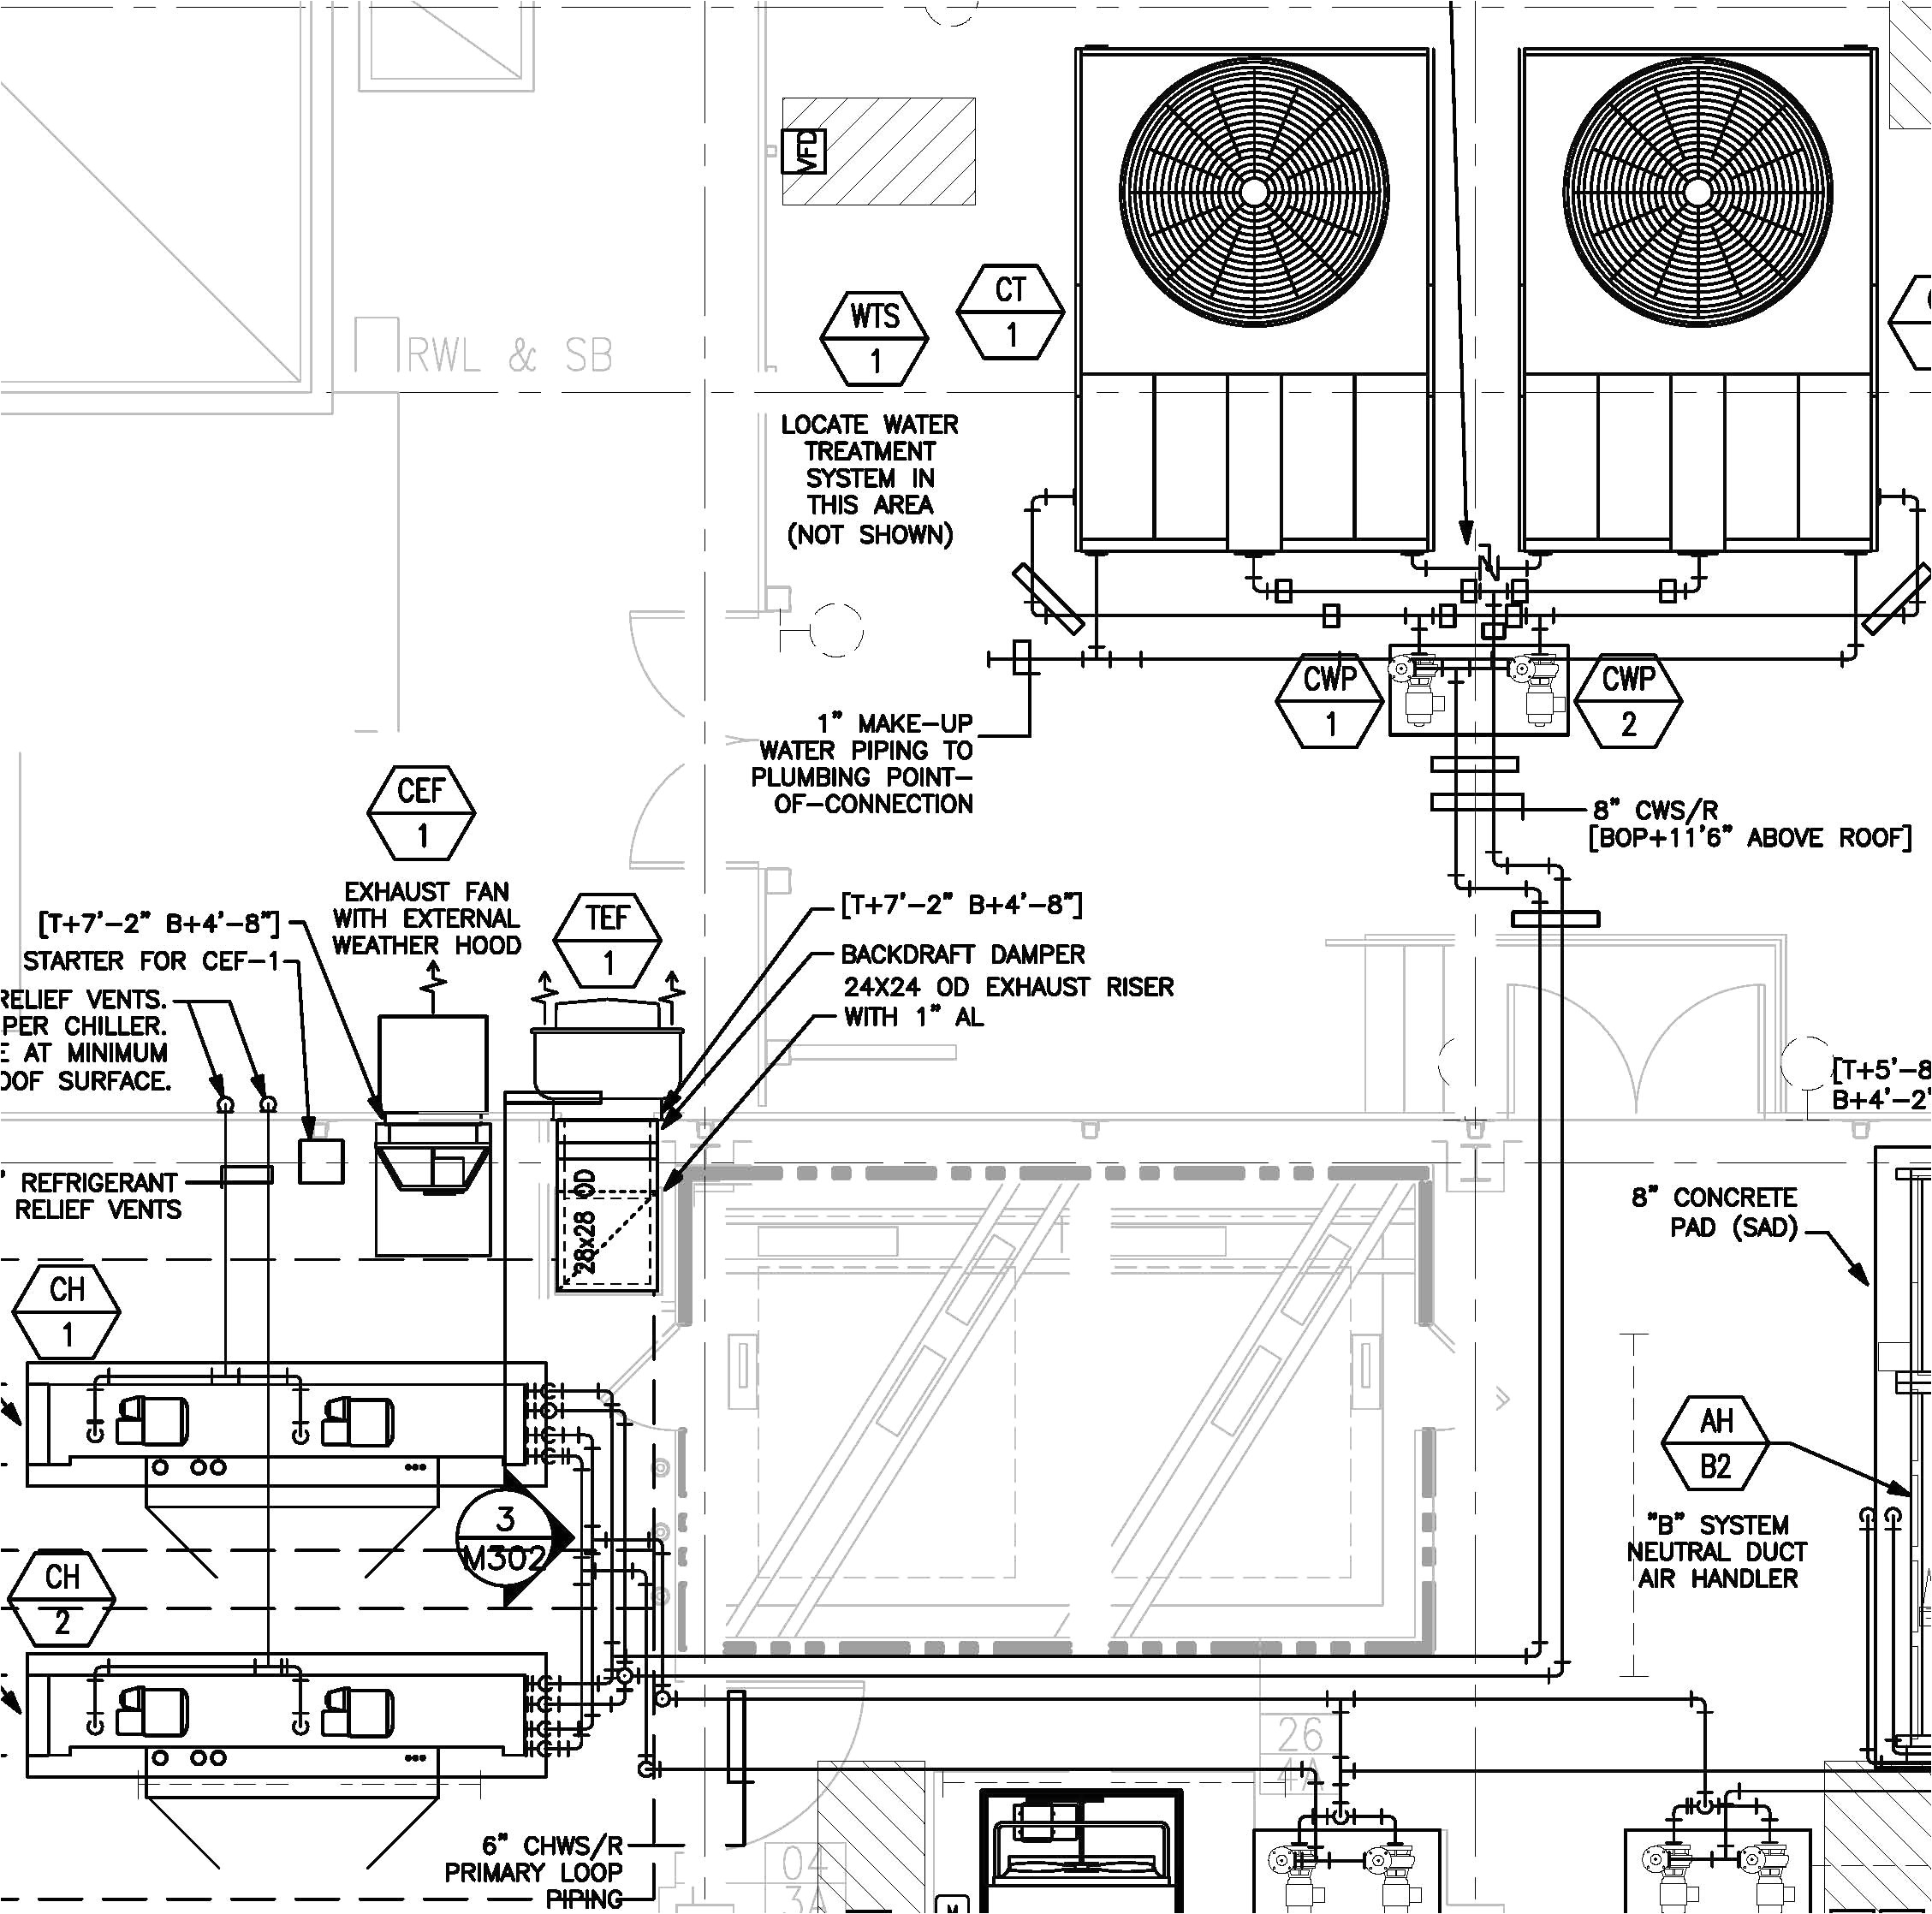 grundfos pump wiring diagram manufacturingengineering